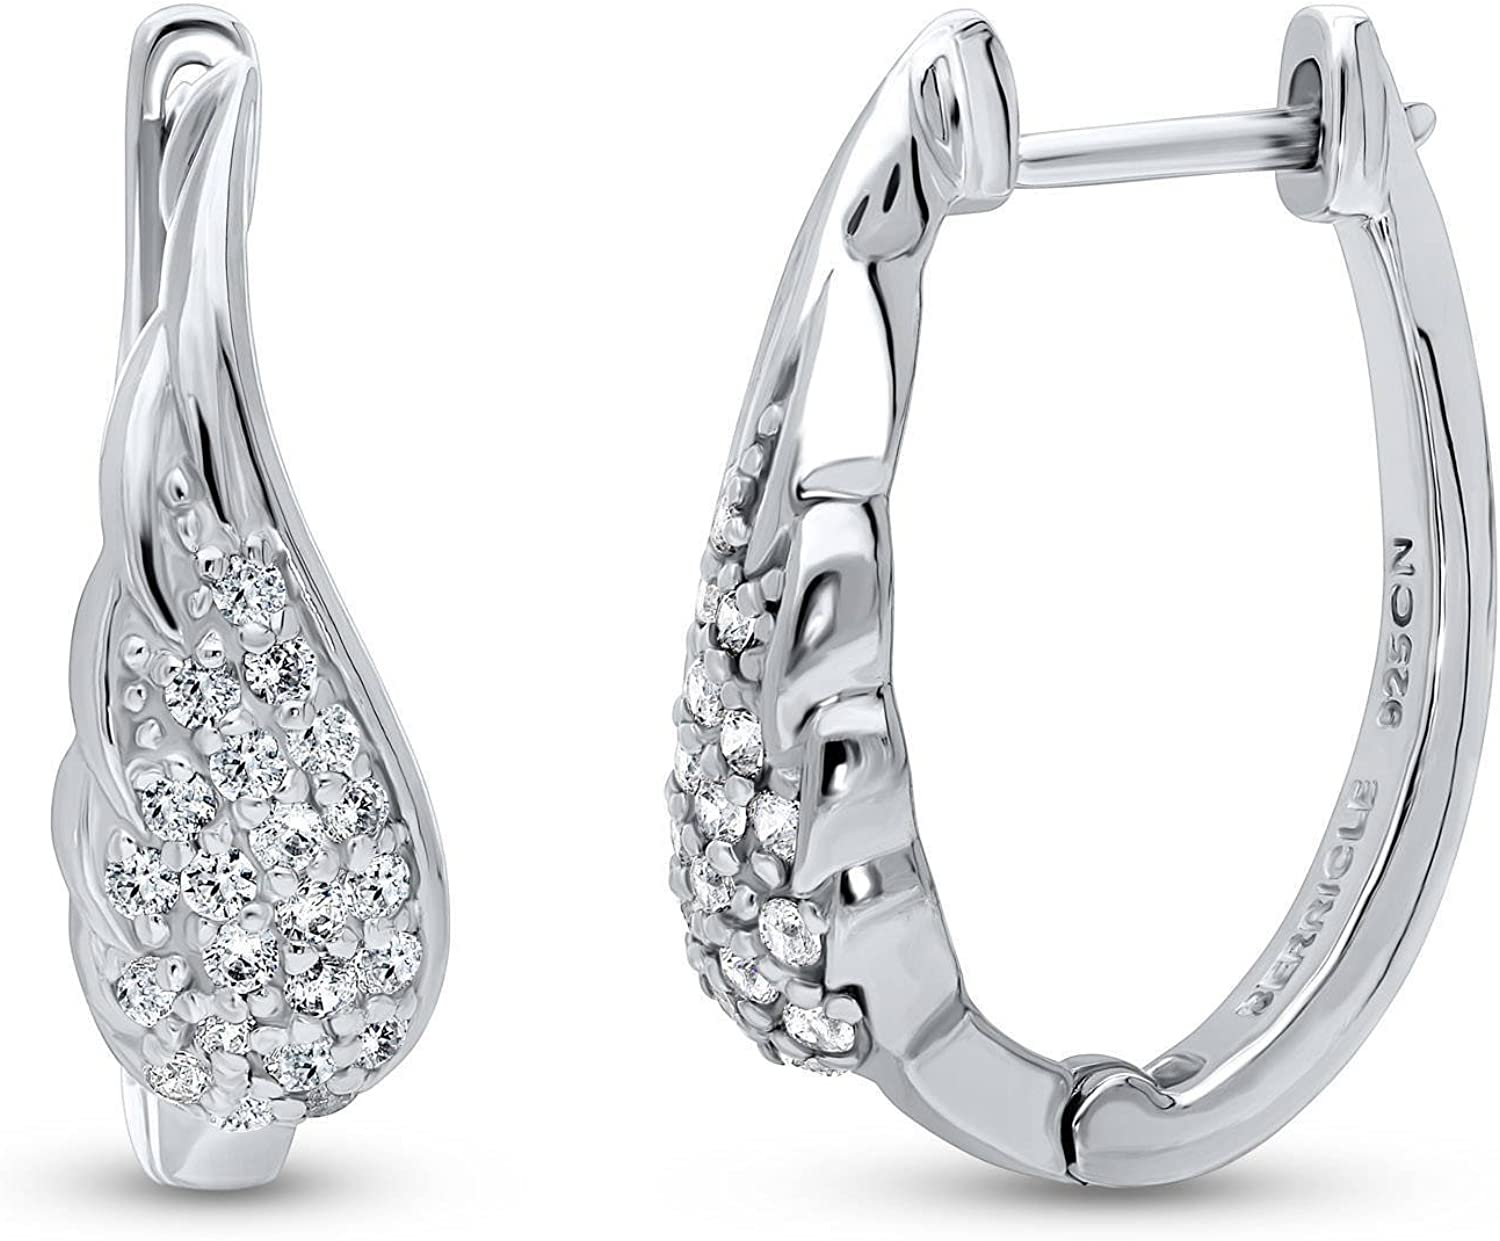 BERRICLE Branded goods Rhodium Plated Sterling Silver Oval A Sales results No. 1 CZ Cubic Zirconia